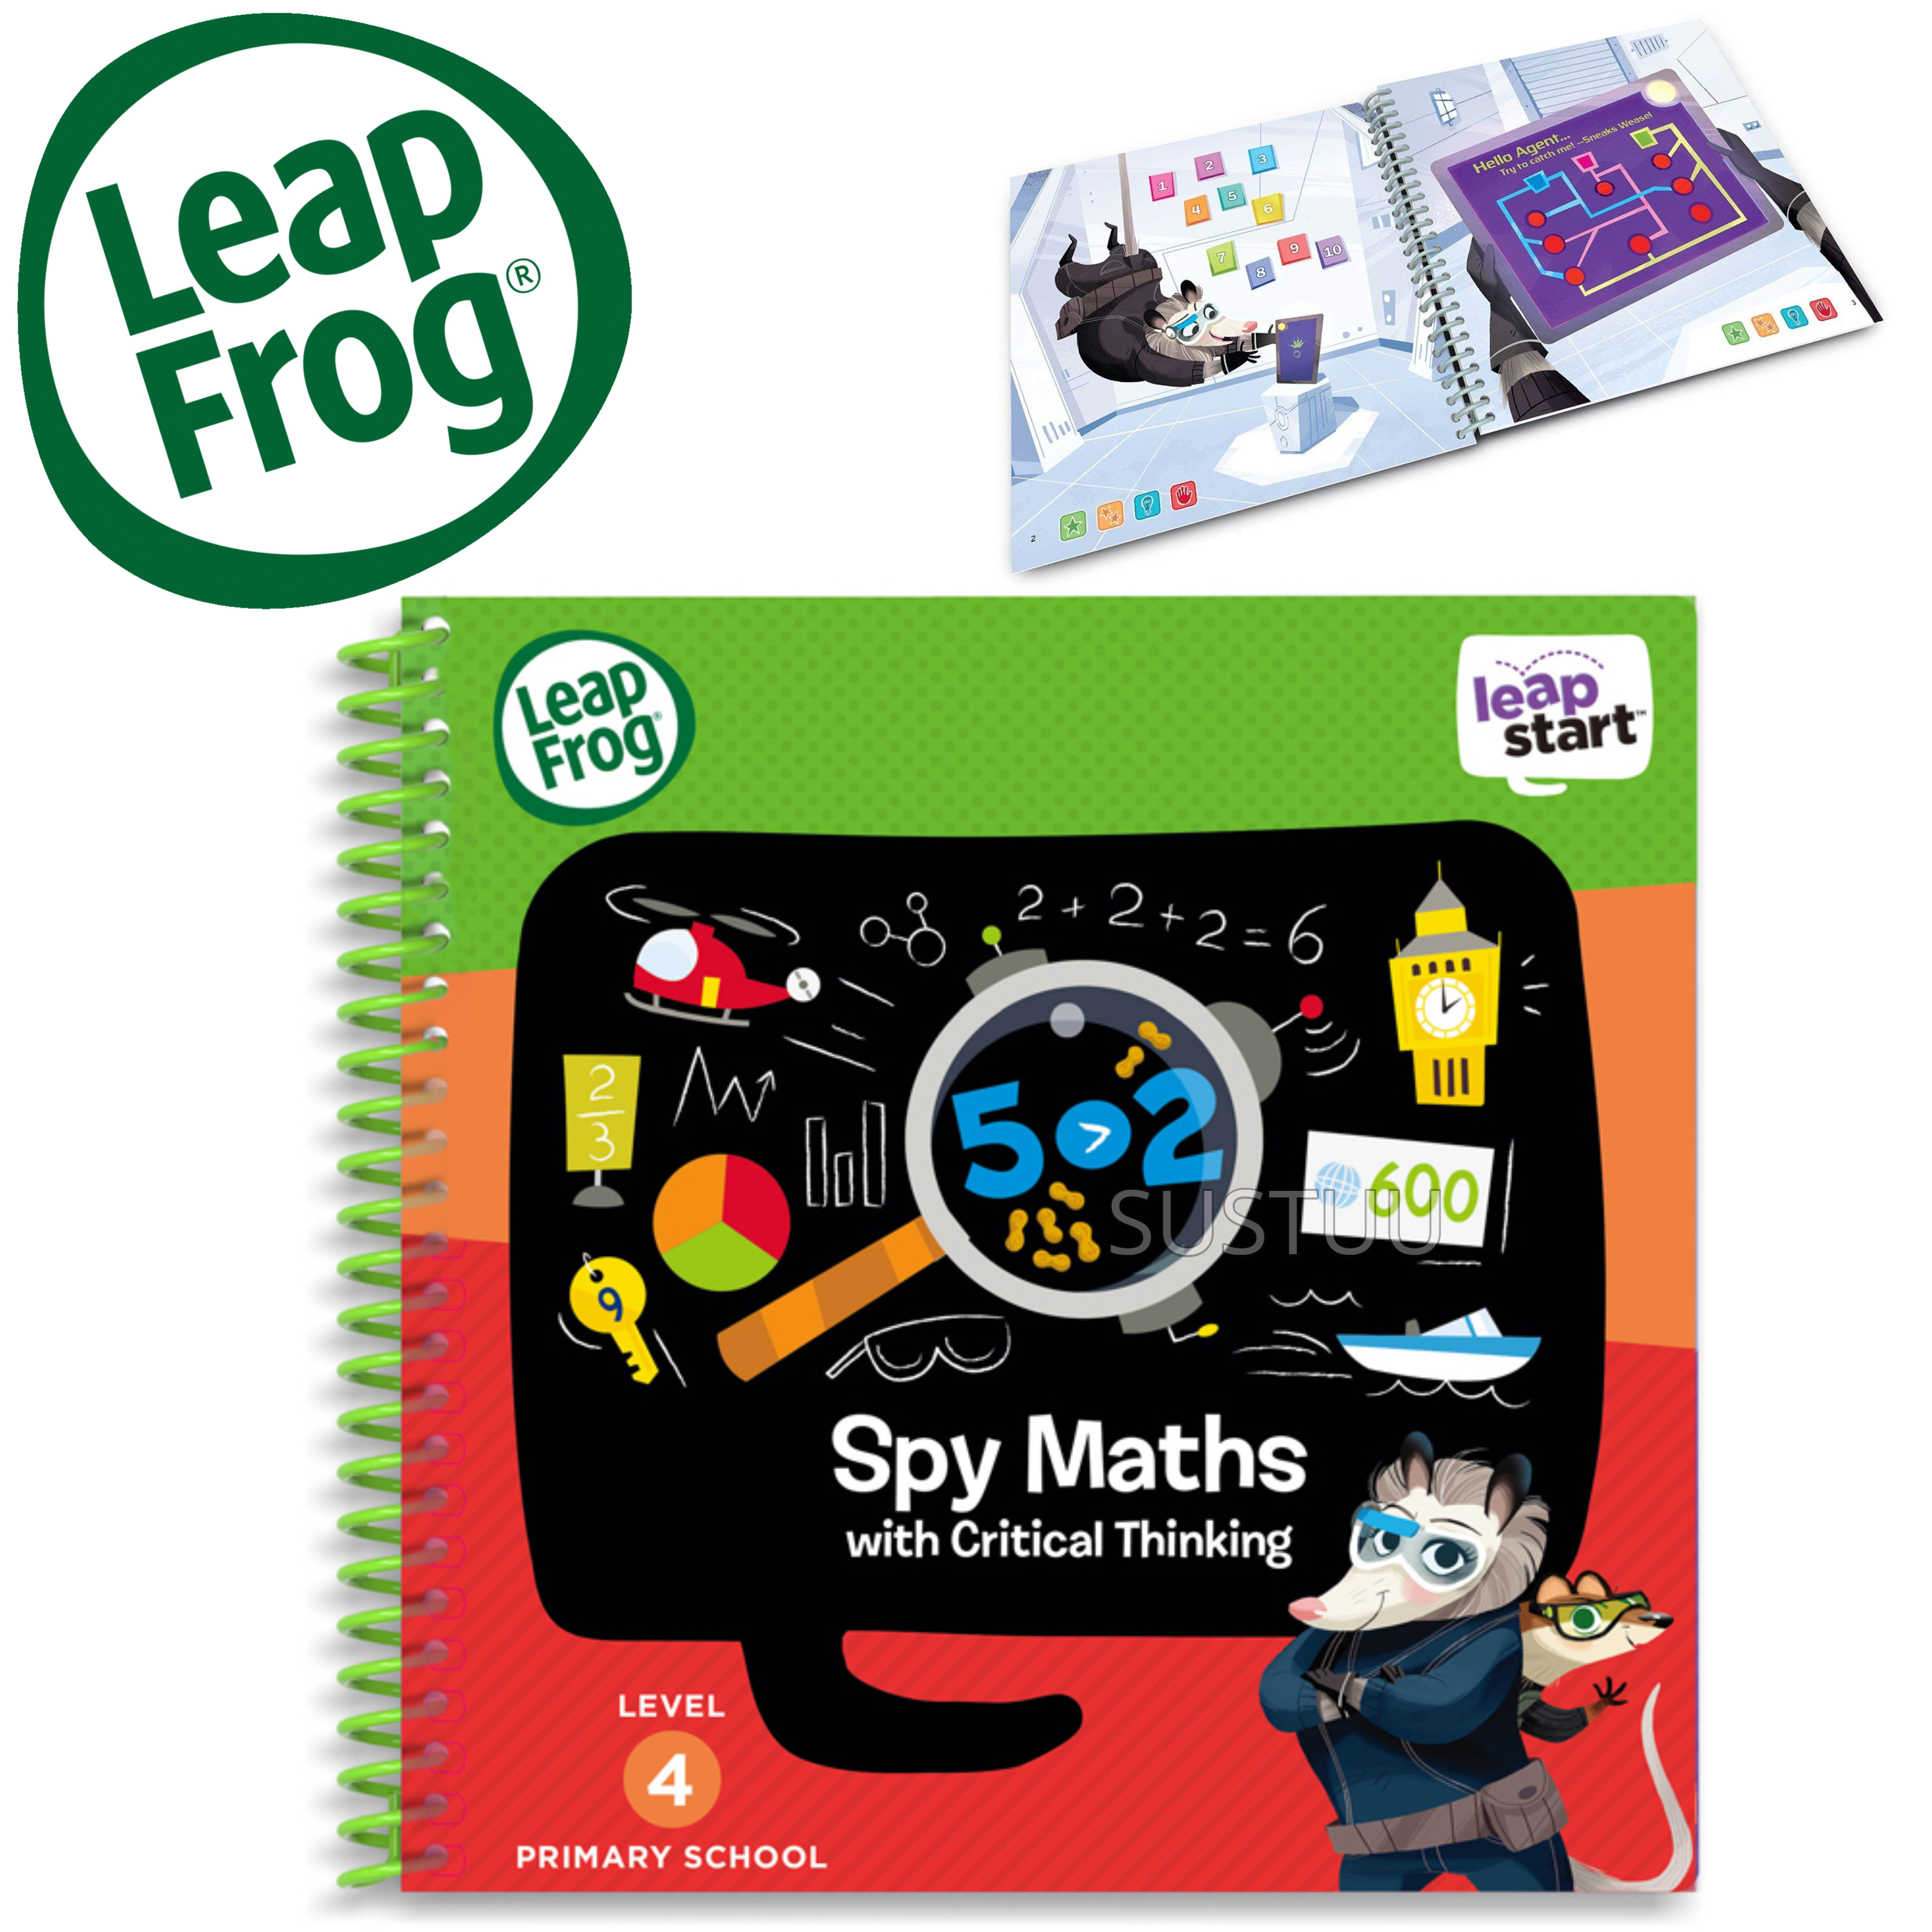 Leap Frog LeapStart Spy Maths Activity Book | 30+ Replayable Activities | +5 Years